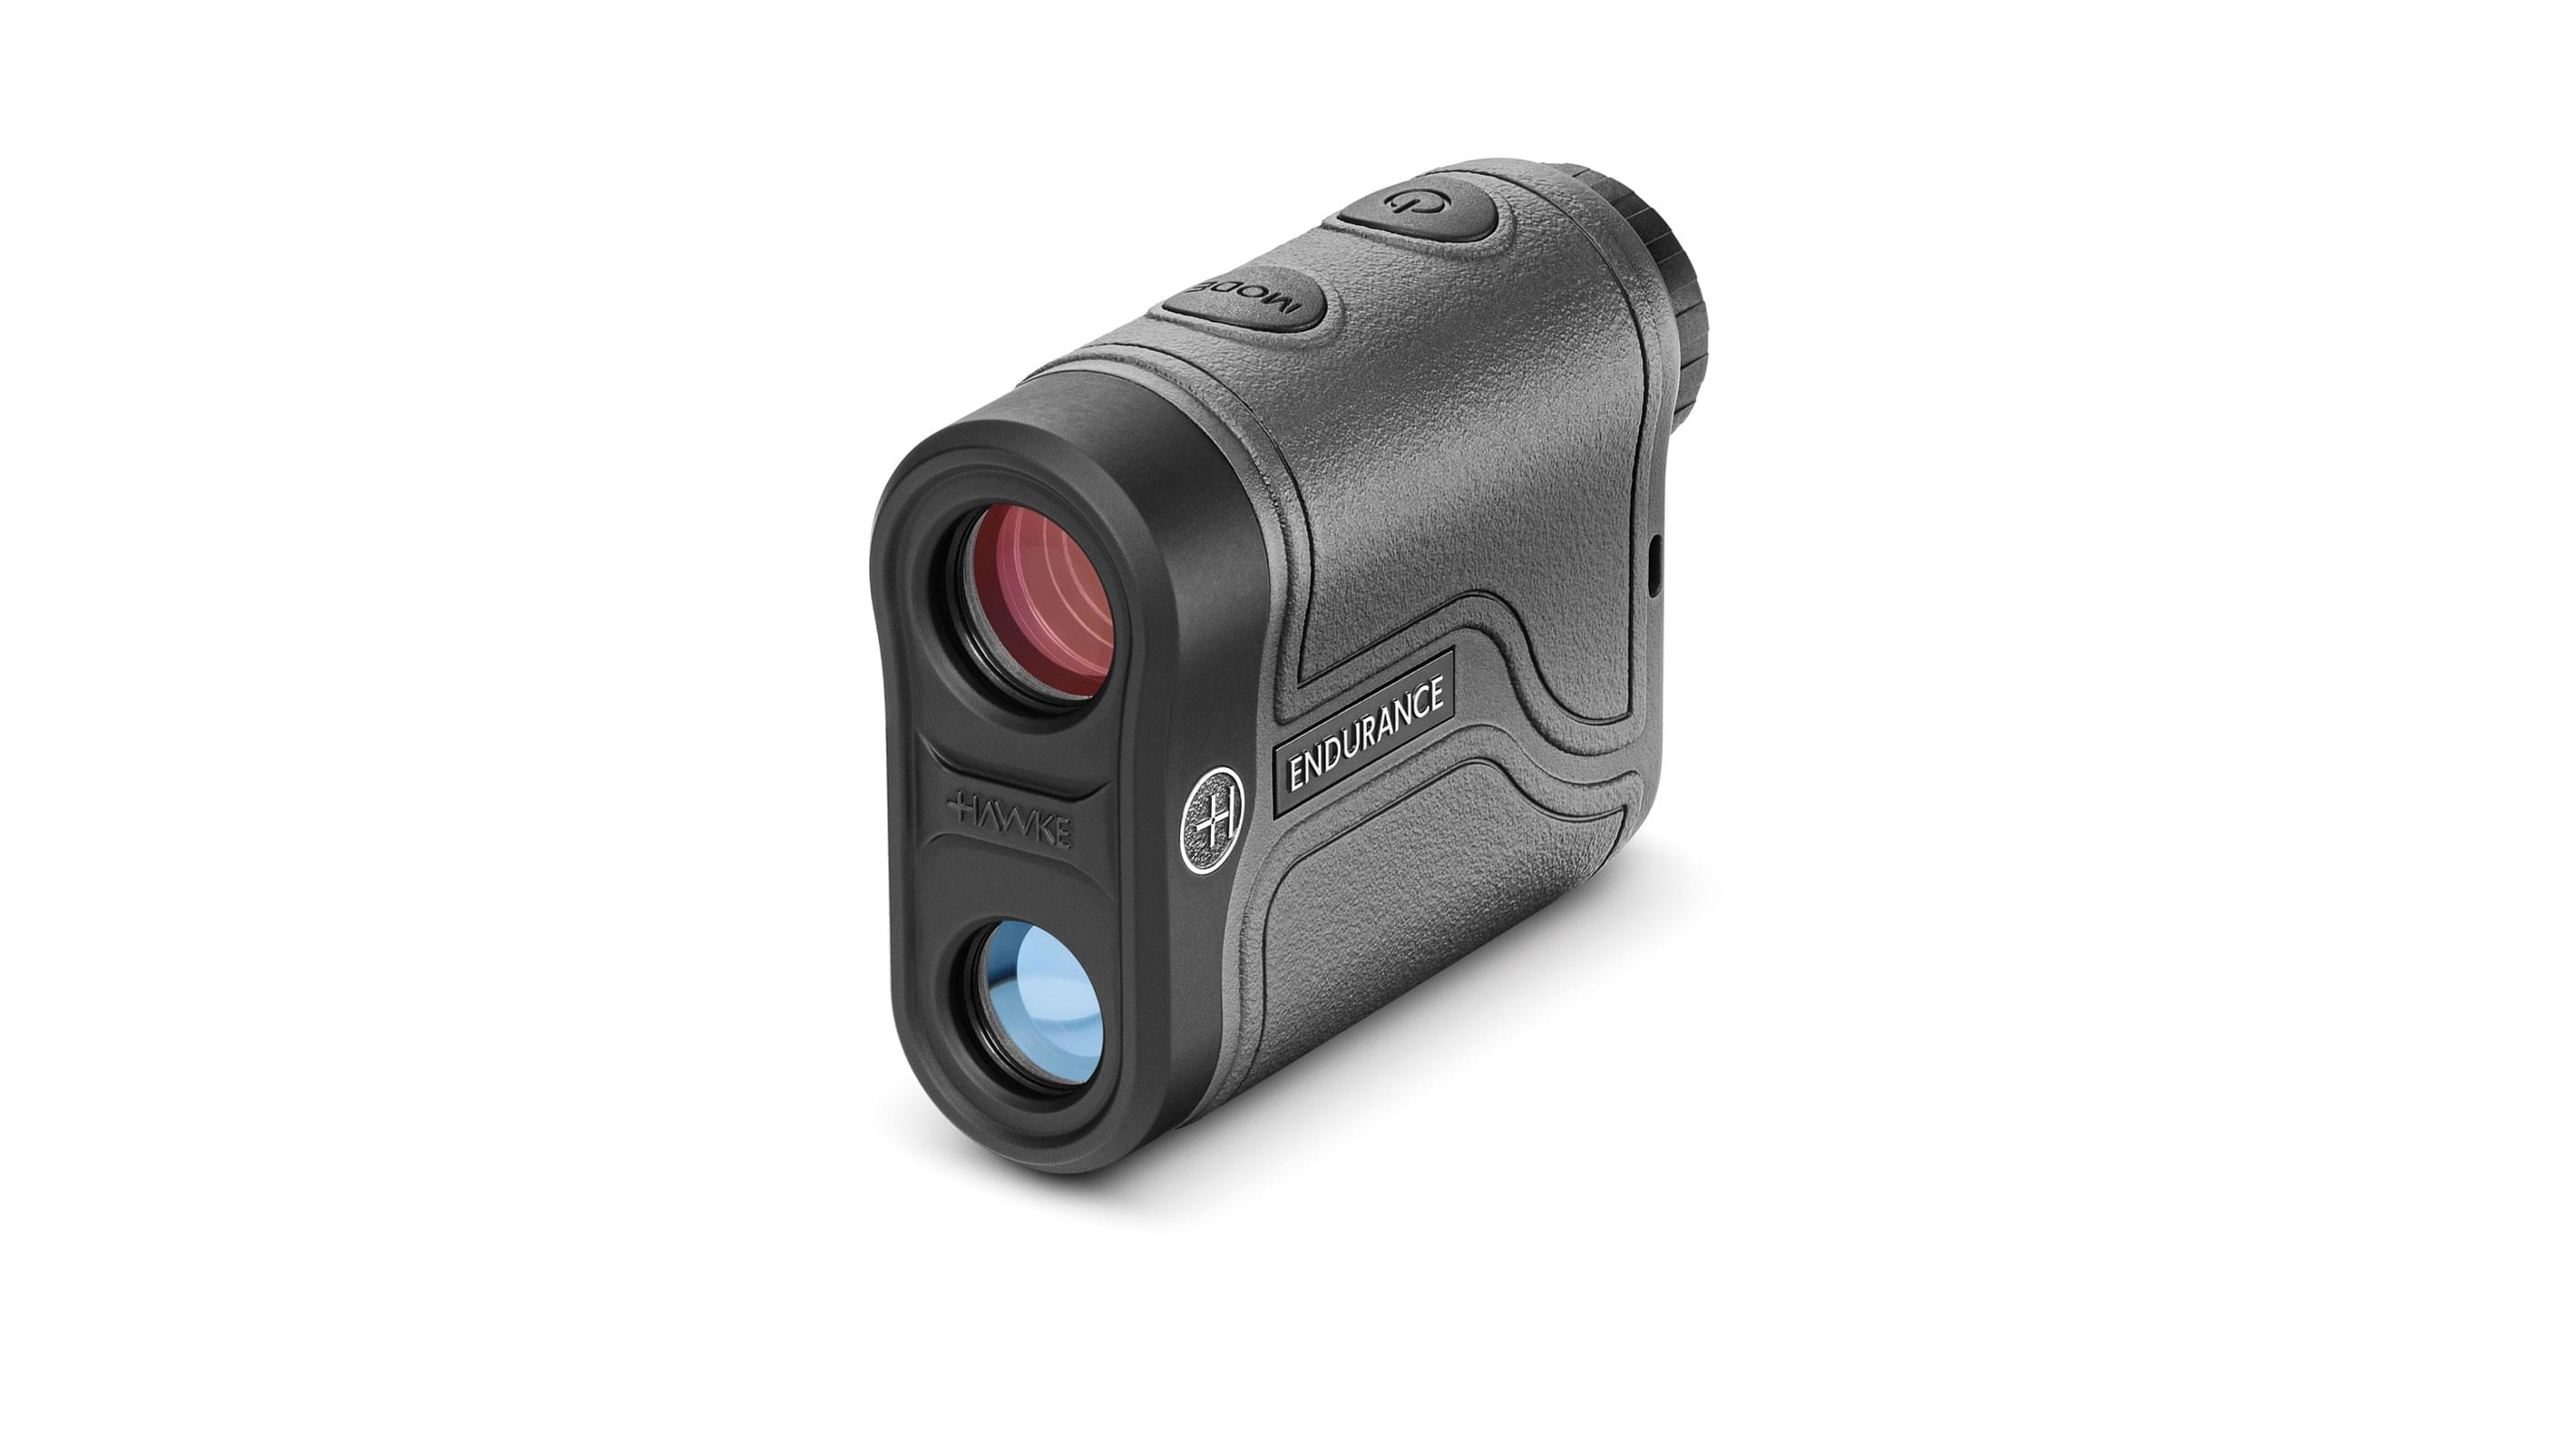 Laser Range Finder Endurance 1500